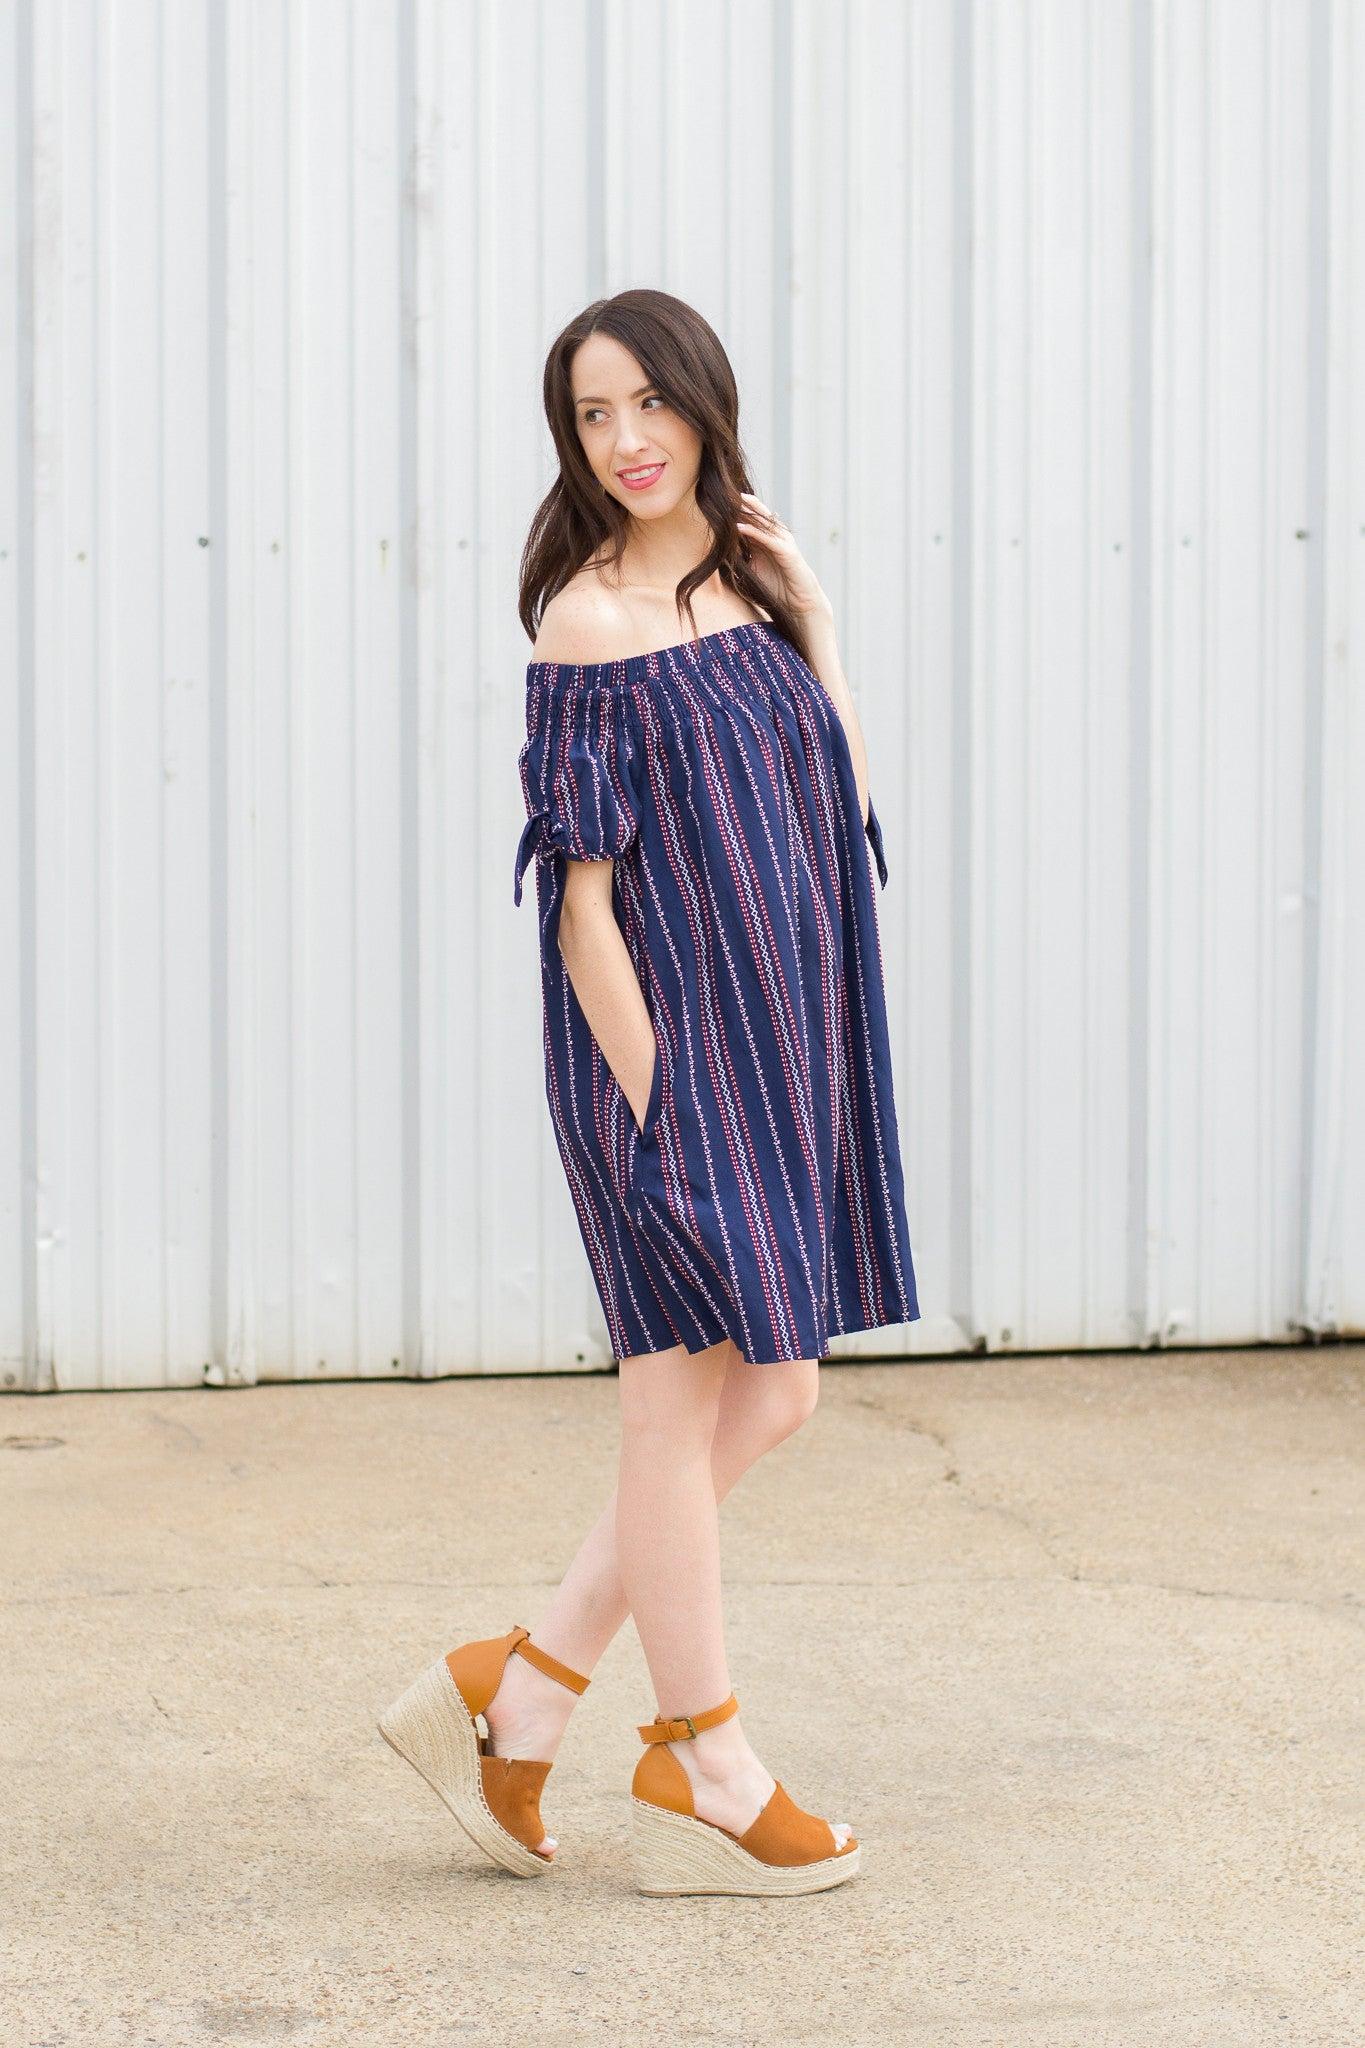 Navy Striped Off the Shoulder Dress for Summer